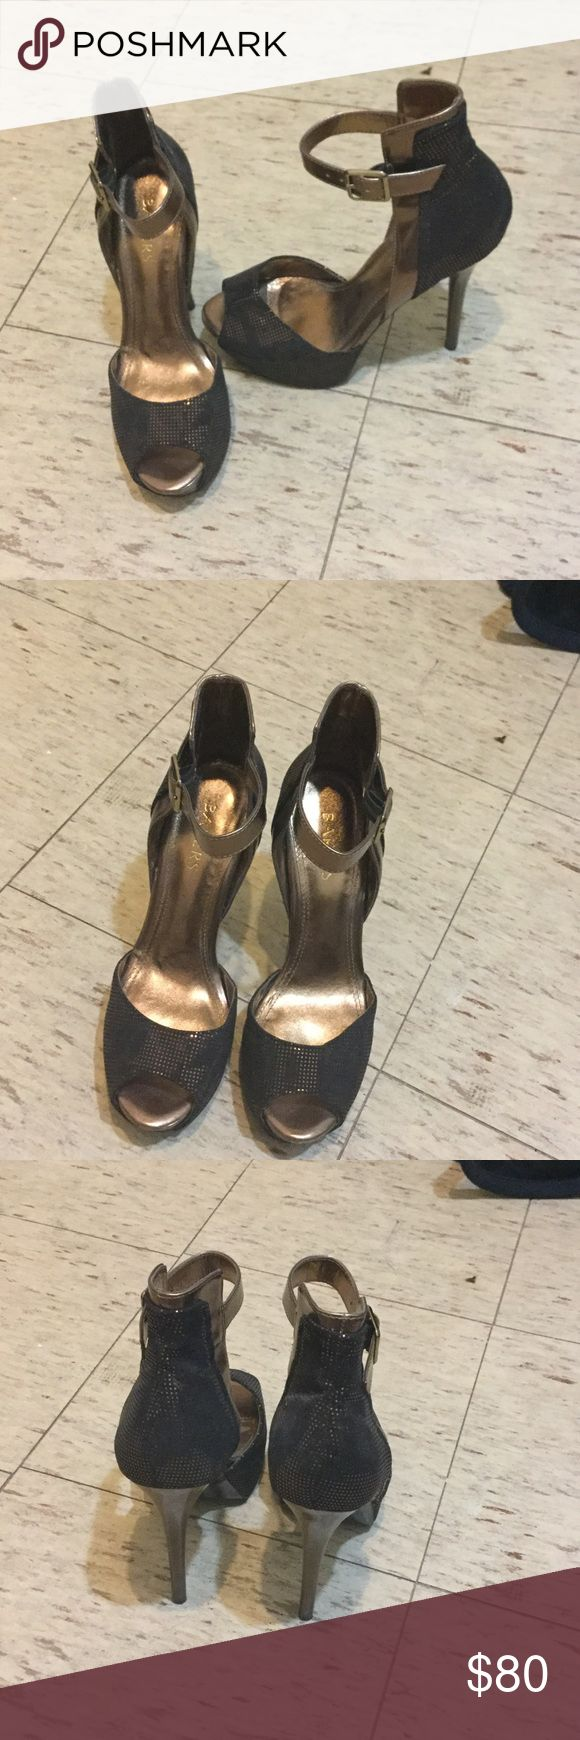 High heeled bronze shoes Metallic bronze and black shoes. Heel height is 3in high. Very comfortable great party or date night heels. Great color to add to your collection of shoes. Bakers Shoes Platforms